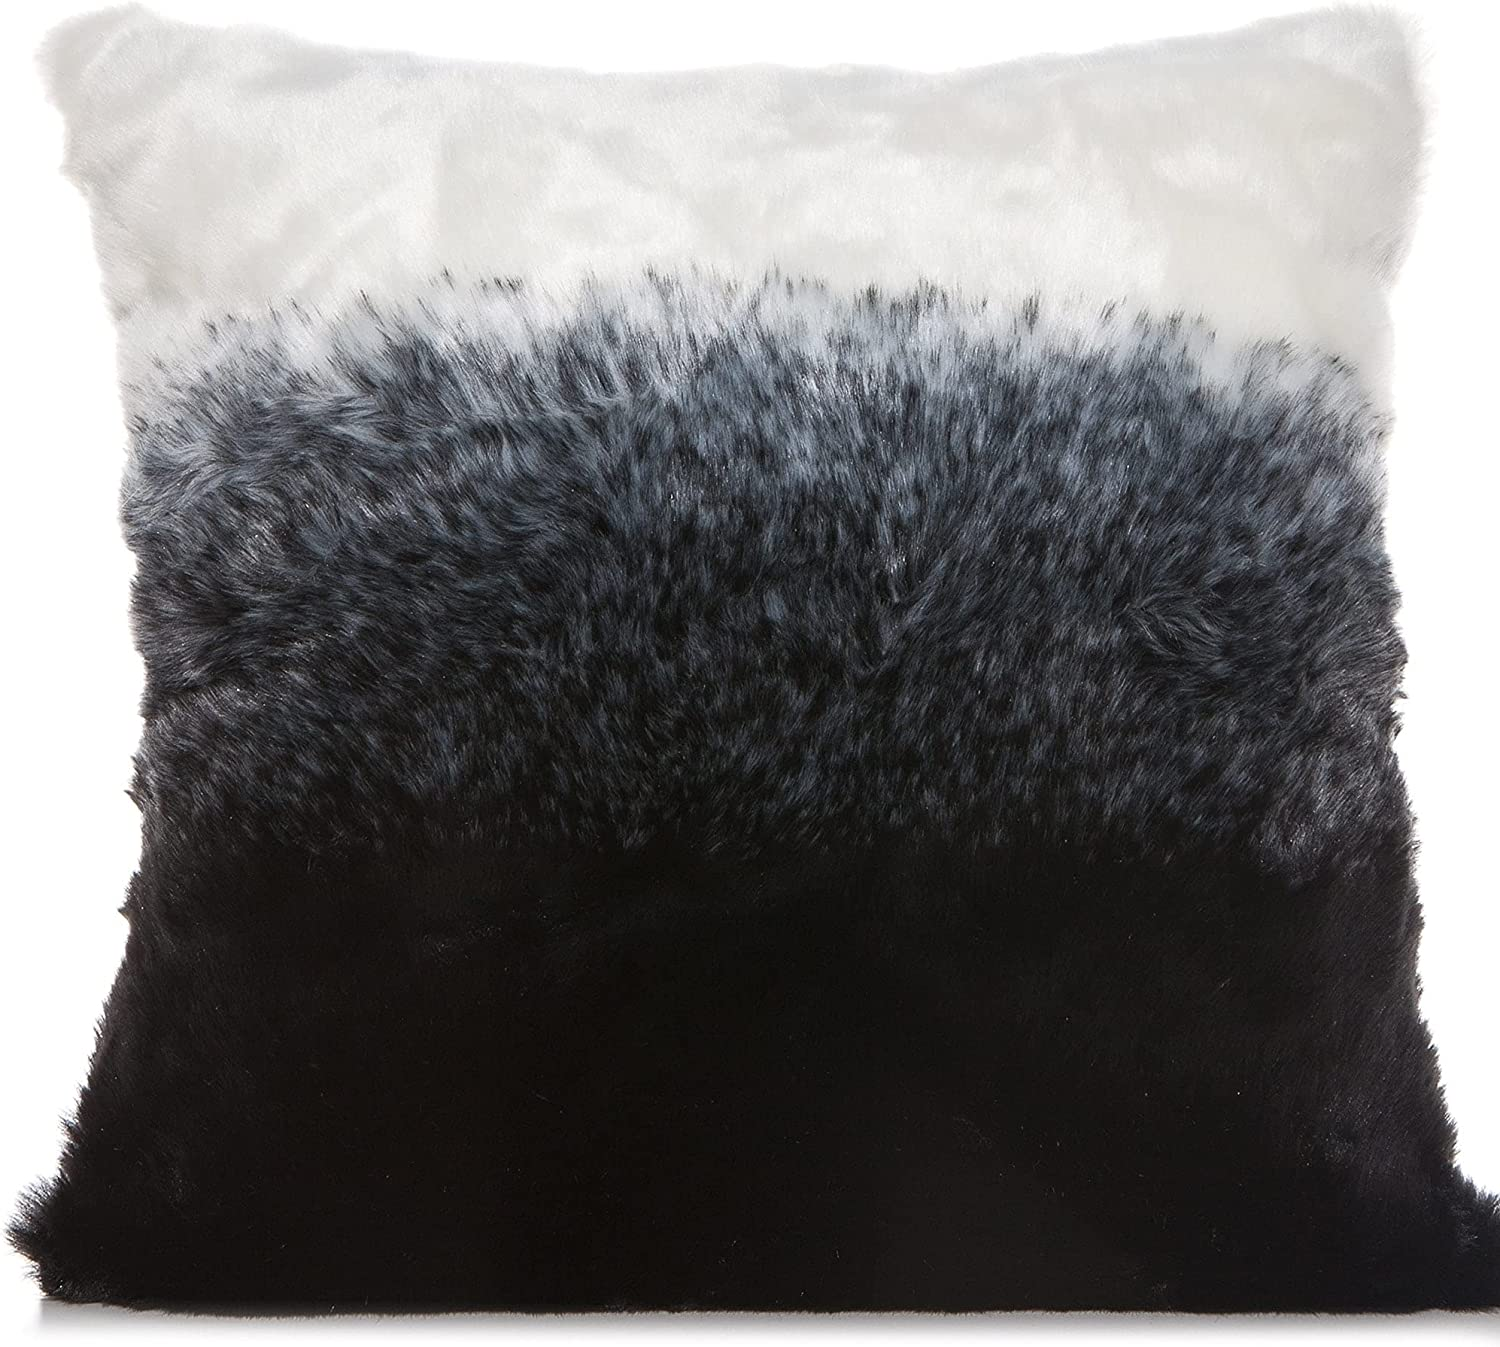 Unknown1 Limited price sale Black White Super-cheap 18 X Mod Accent Pillow Abstract